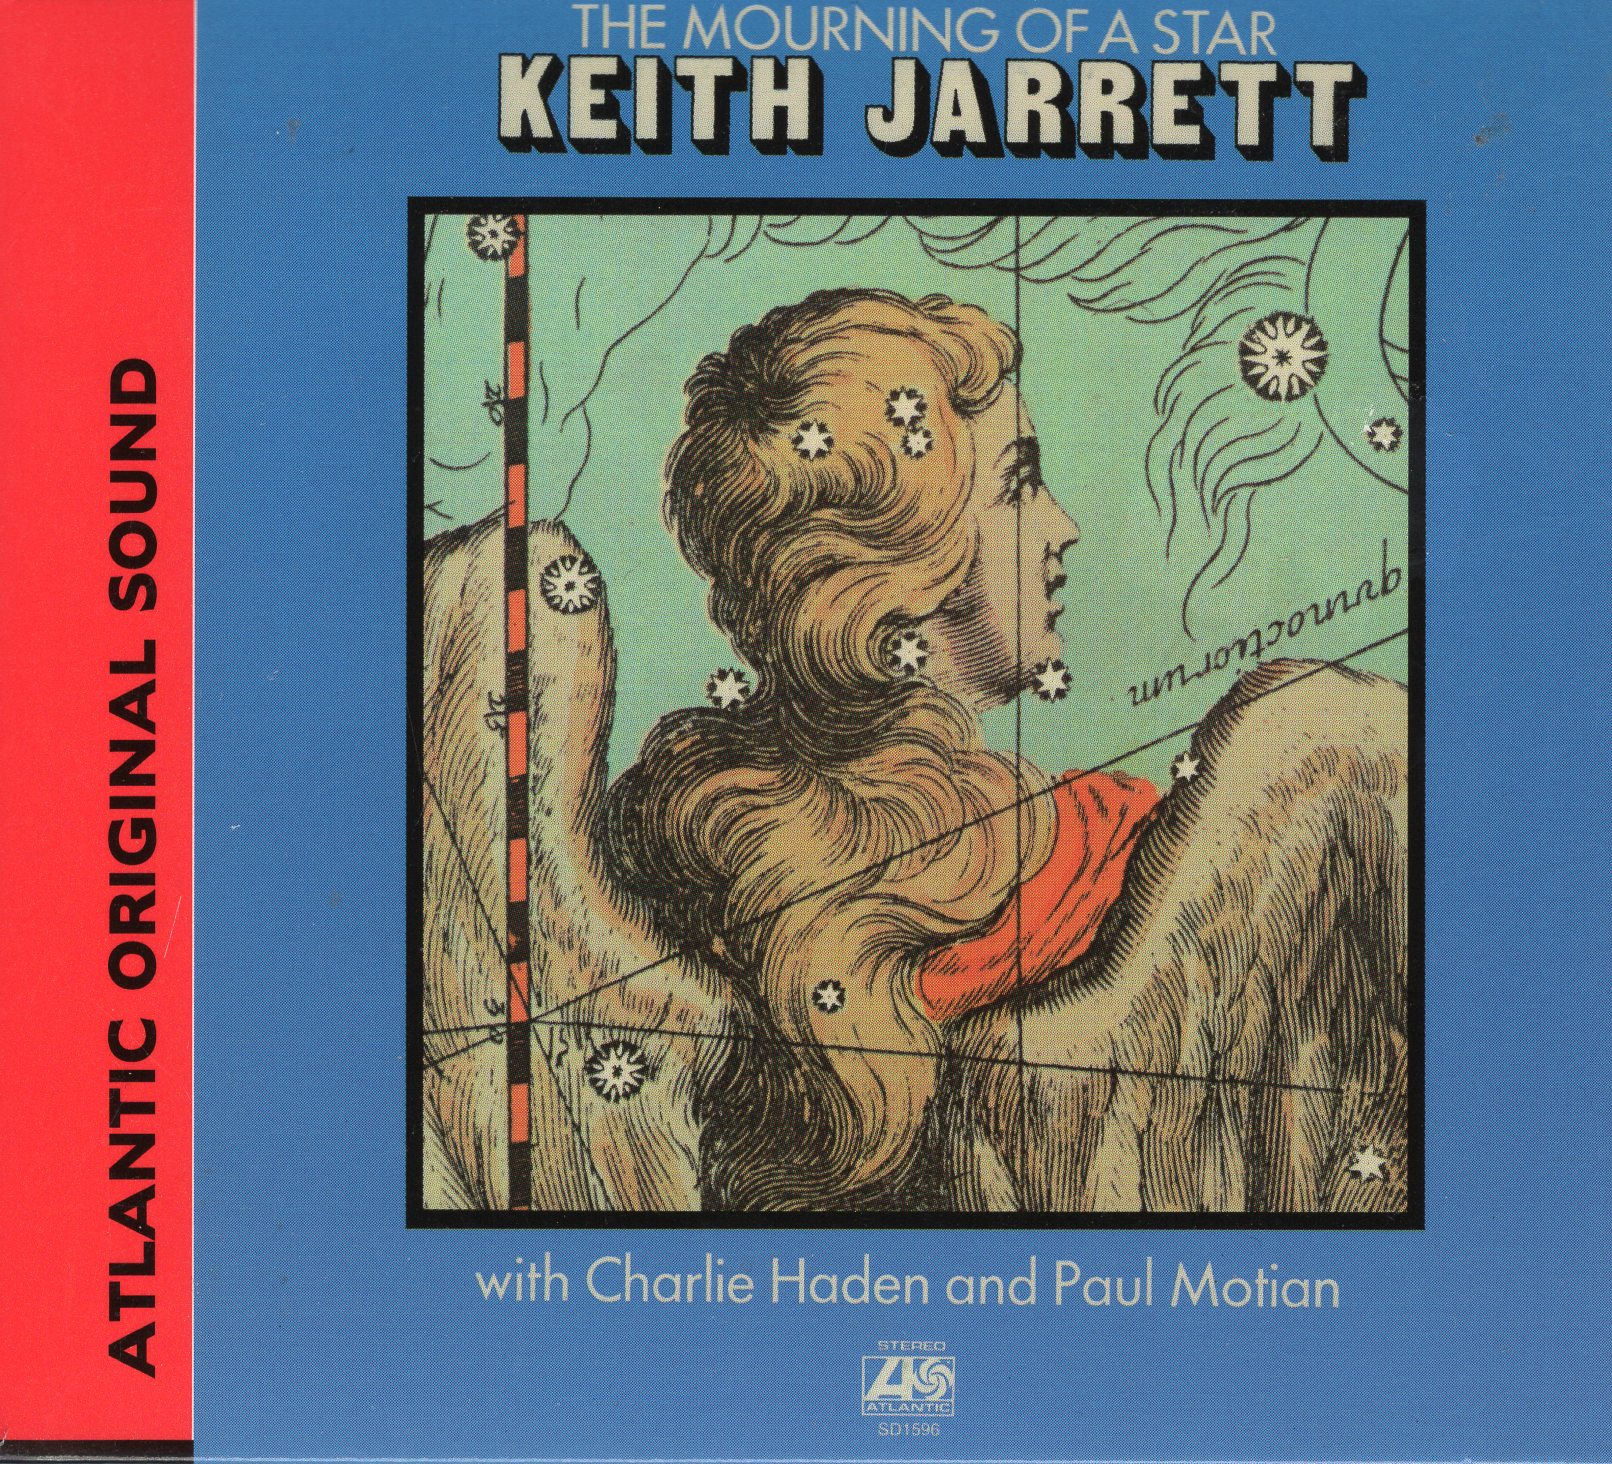 """The Mourning of a Star"" Charlie Haden, Keith Jarrett, Paul Motian"